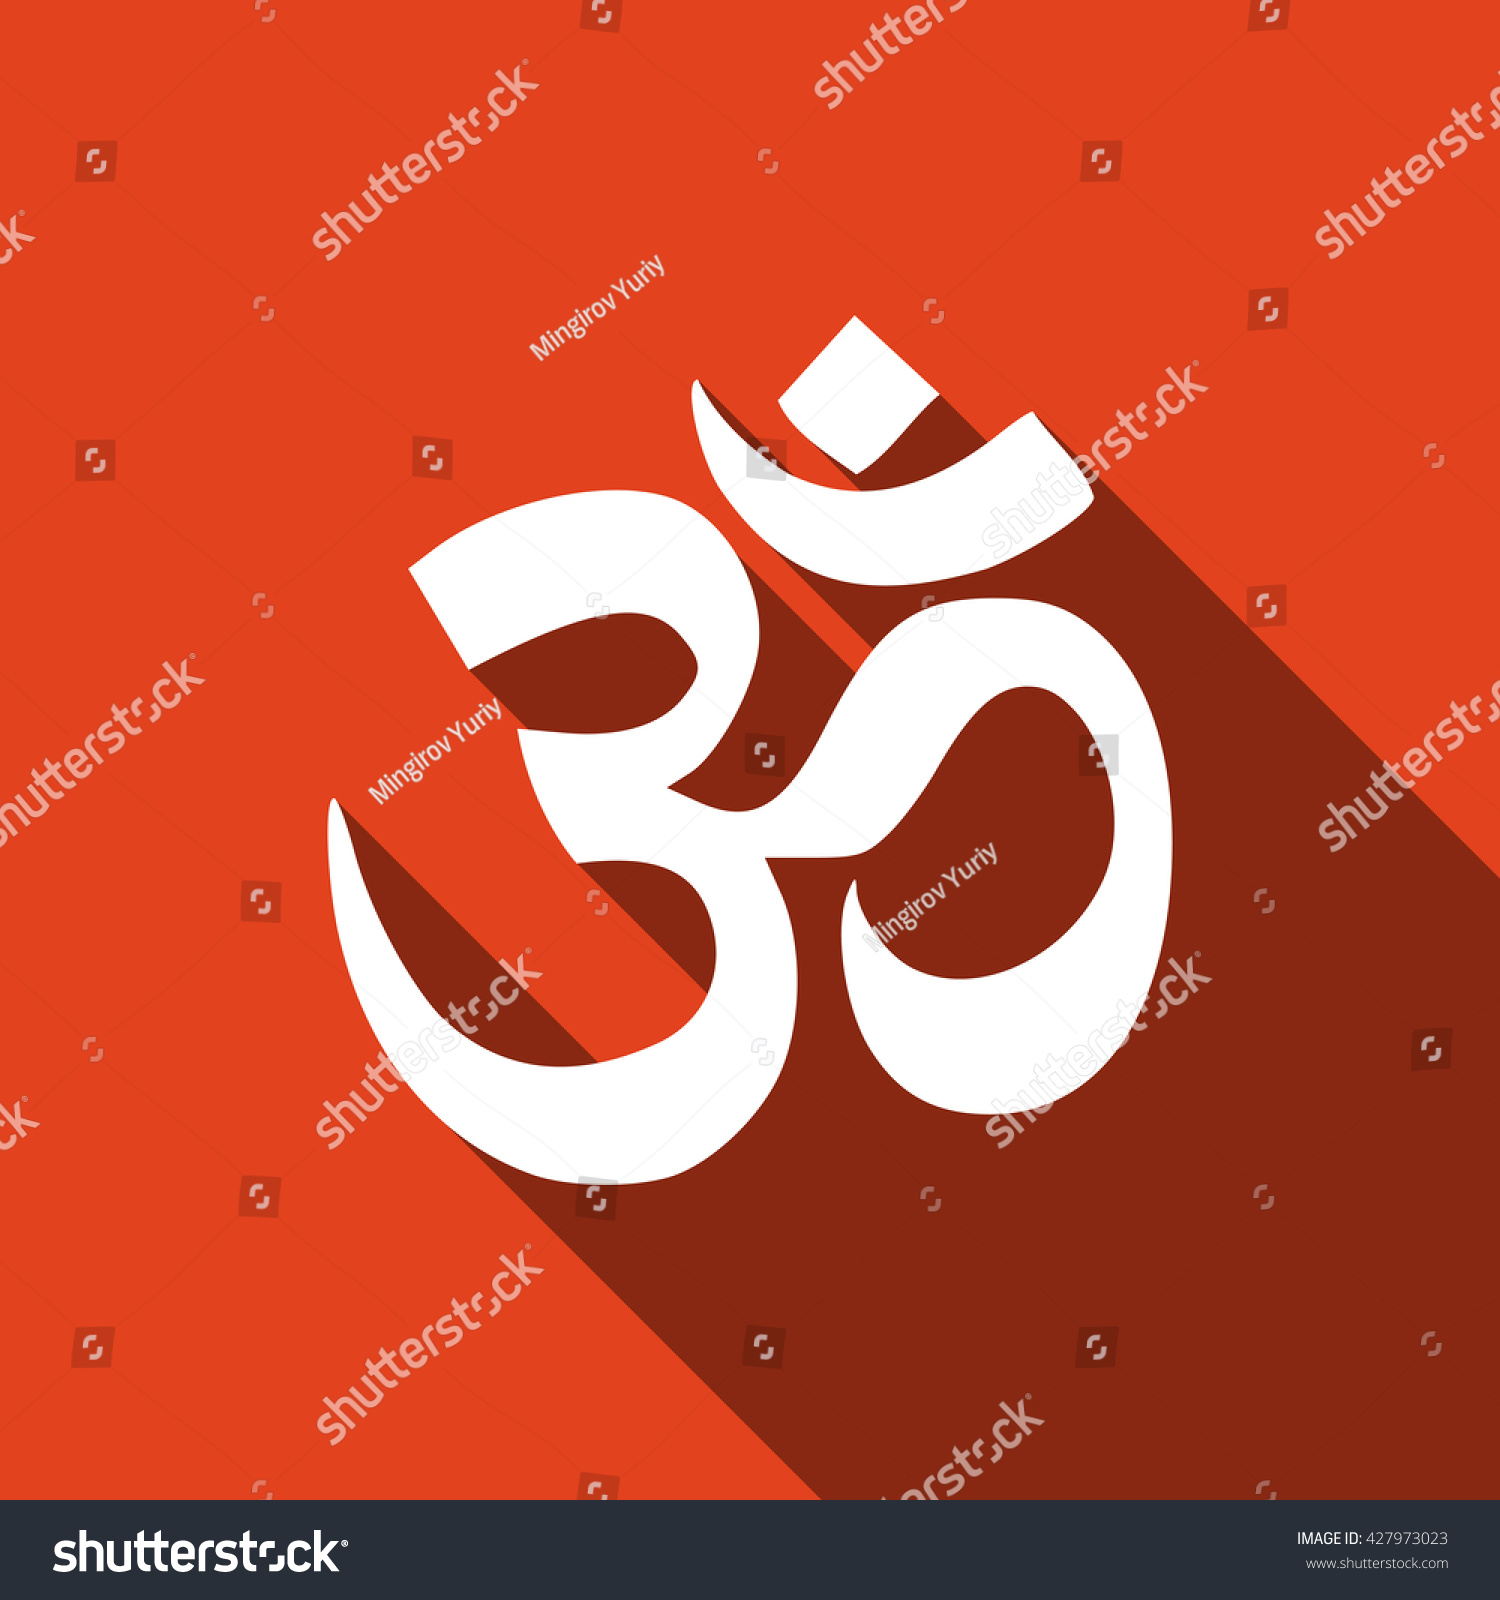 Sign om symbol buddhism hinduism religions stock vector 427973023 sign om symbol of buddhism and hinduism religions flat icon with long shadow vector buycottarizona